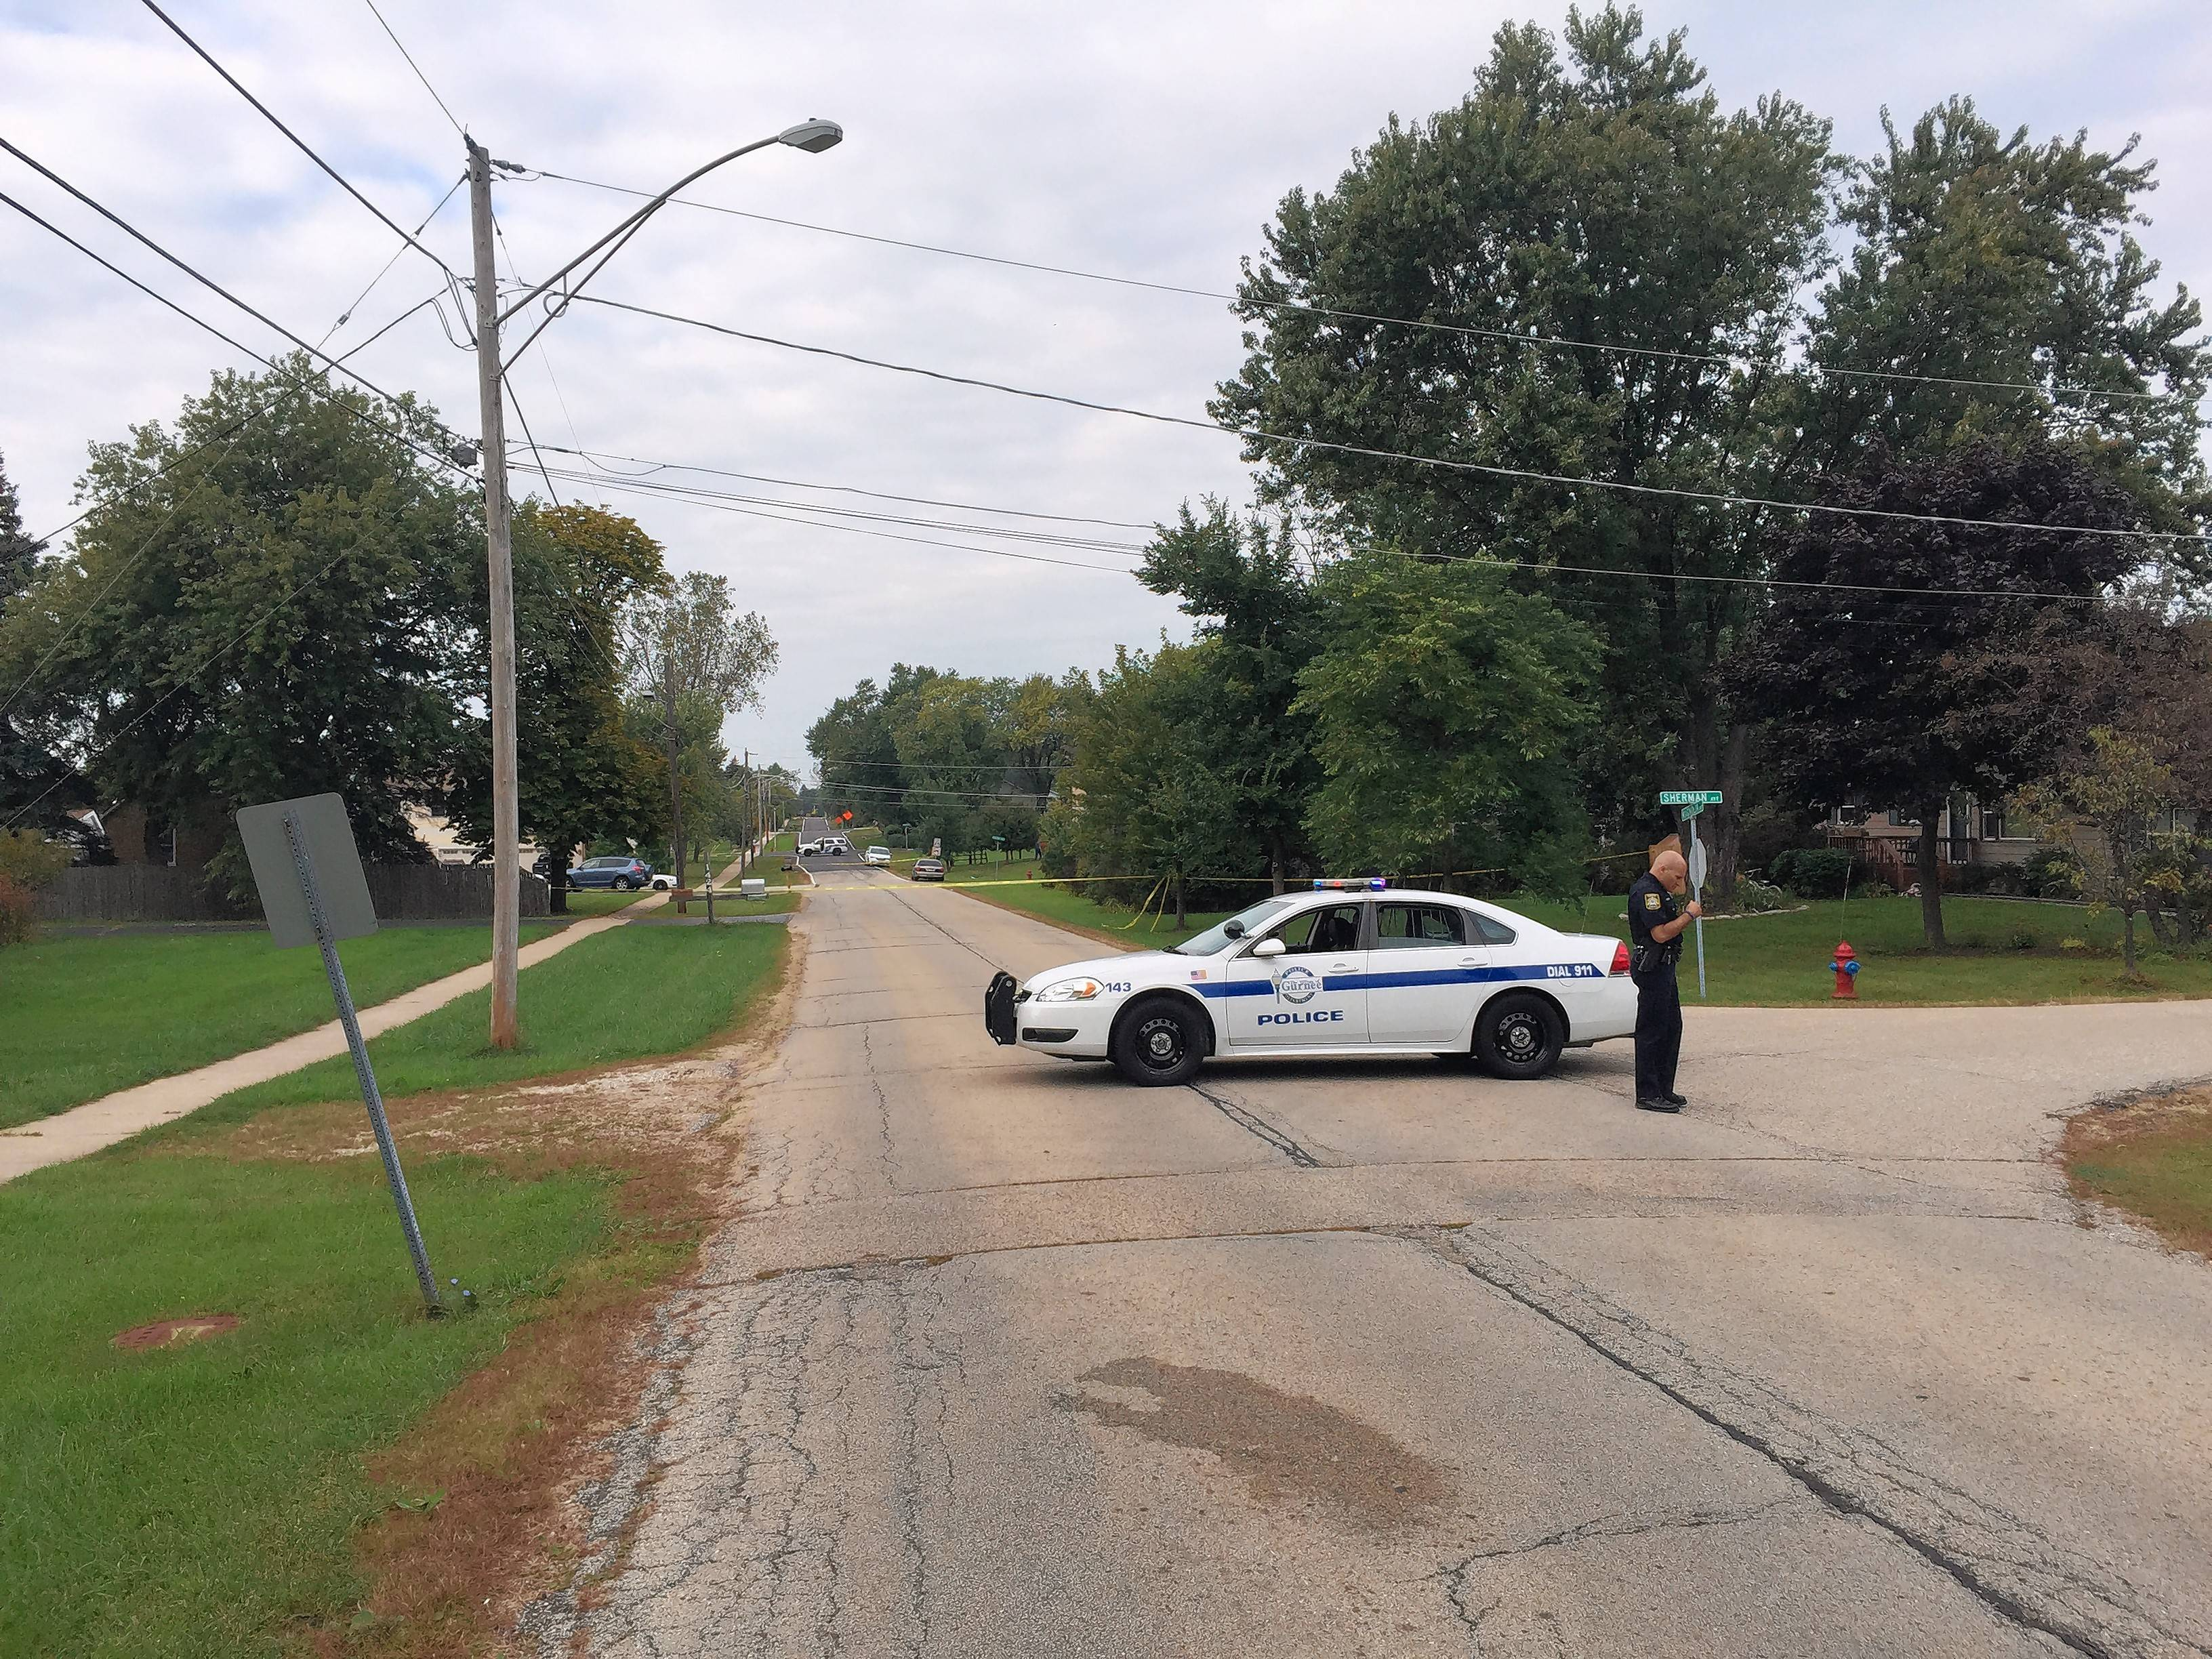 Police in Gurnee set up a perimeter Sunday around the 3700 block of Pacific Avenue while investigating an apparently domestic-related homicide there.